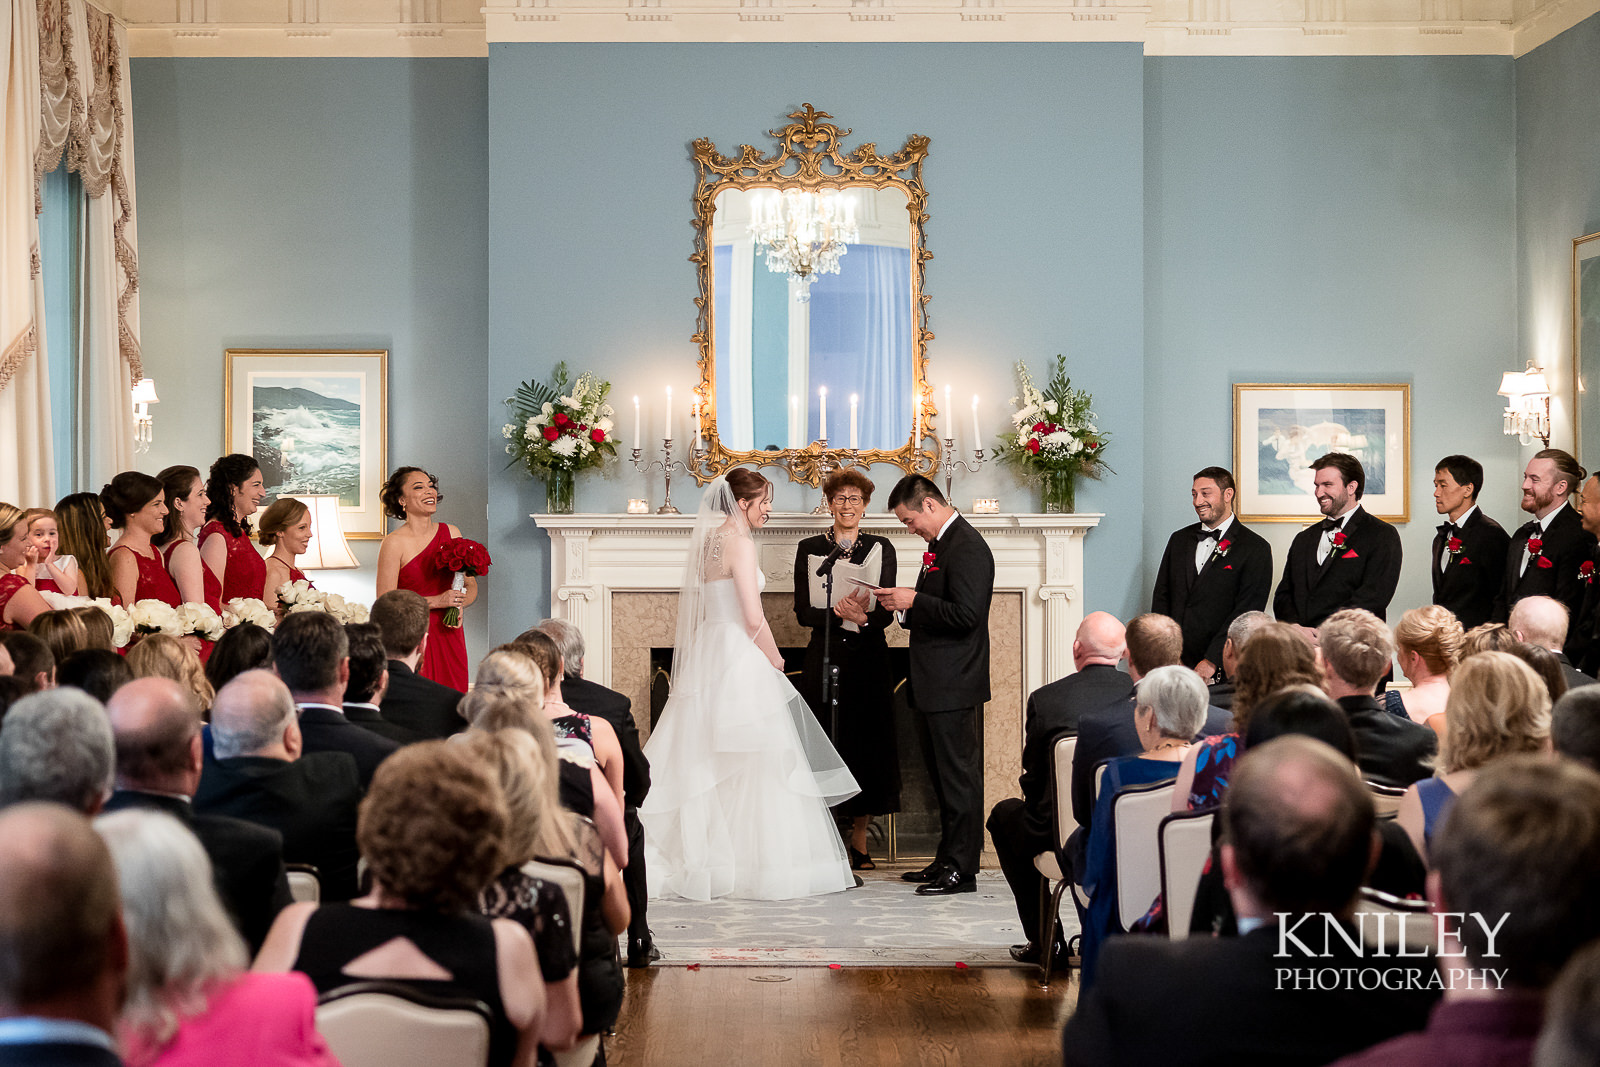 073 - Rochester NY wedding pictures - Genesee Valley Club - Ceremony and Reception - XT2B6819.jpg